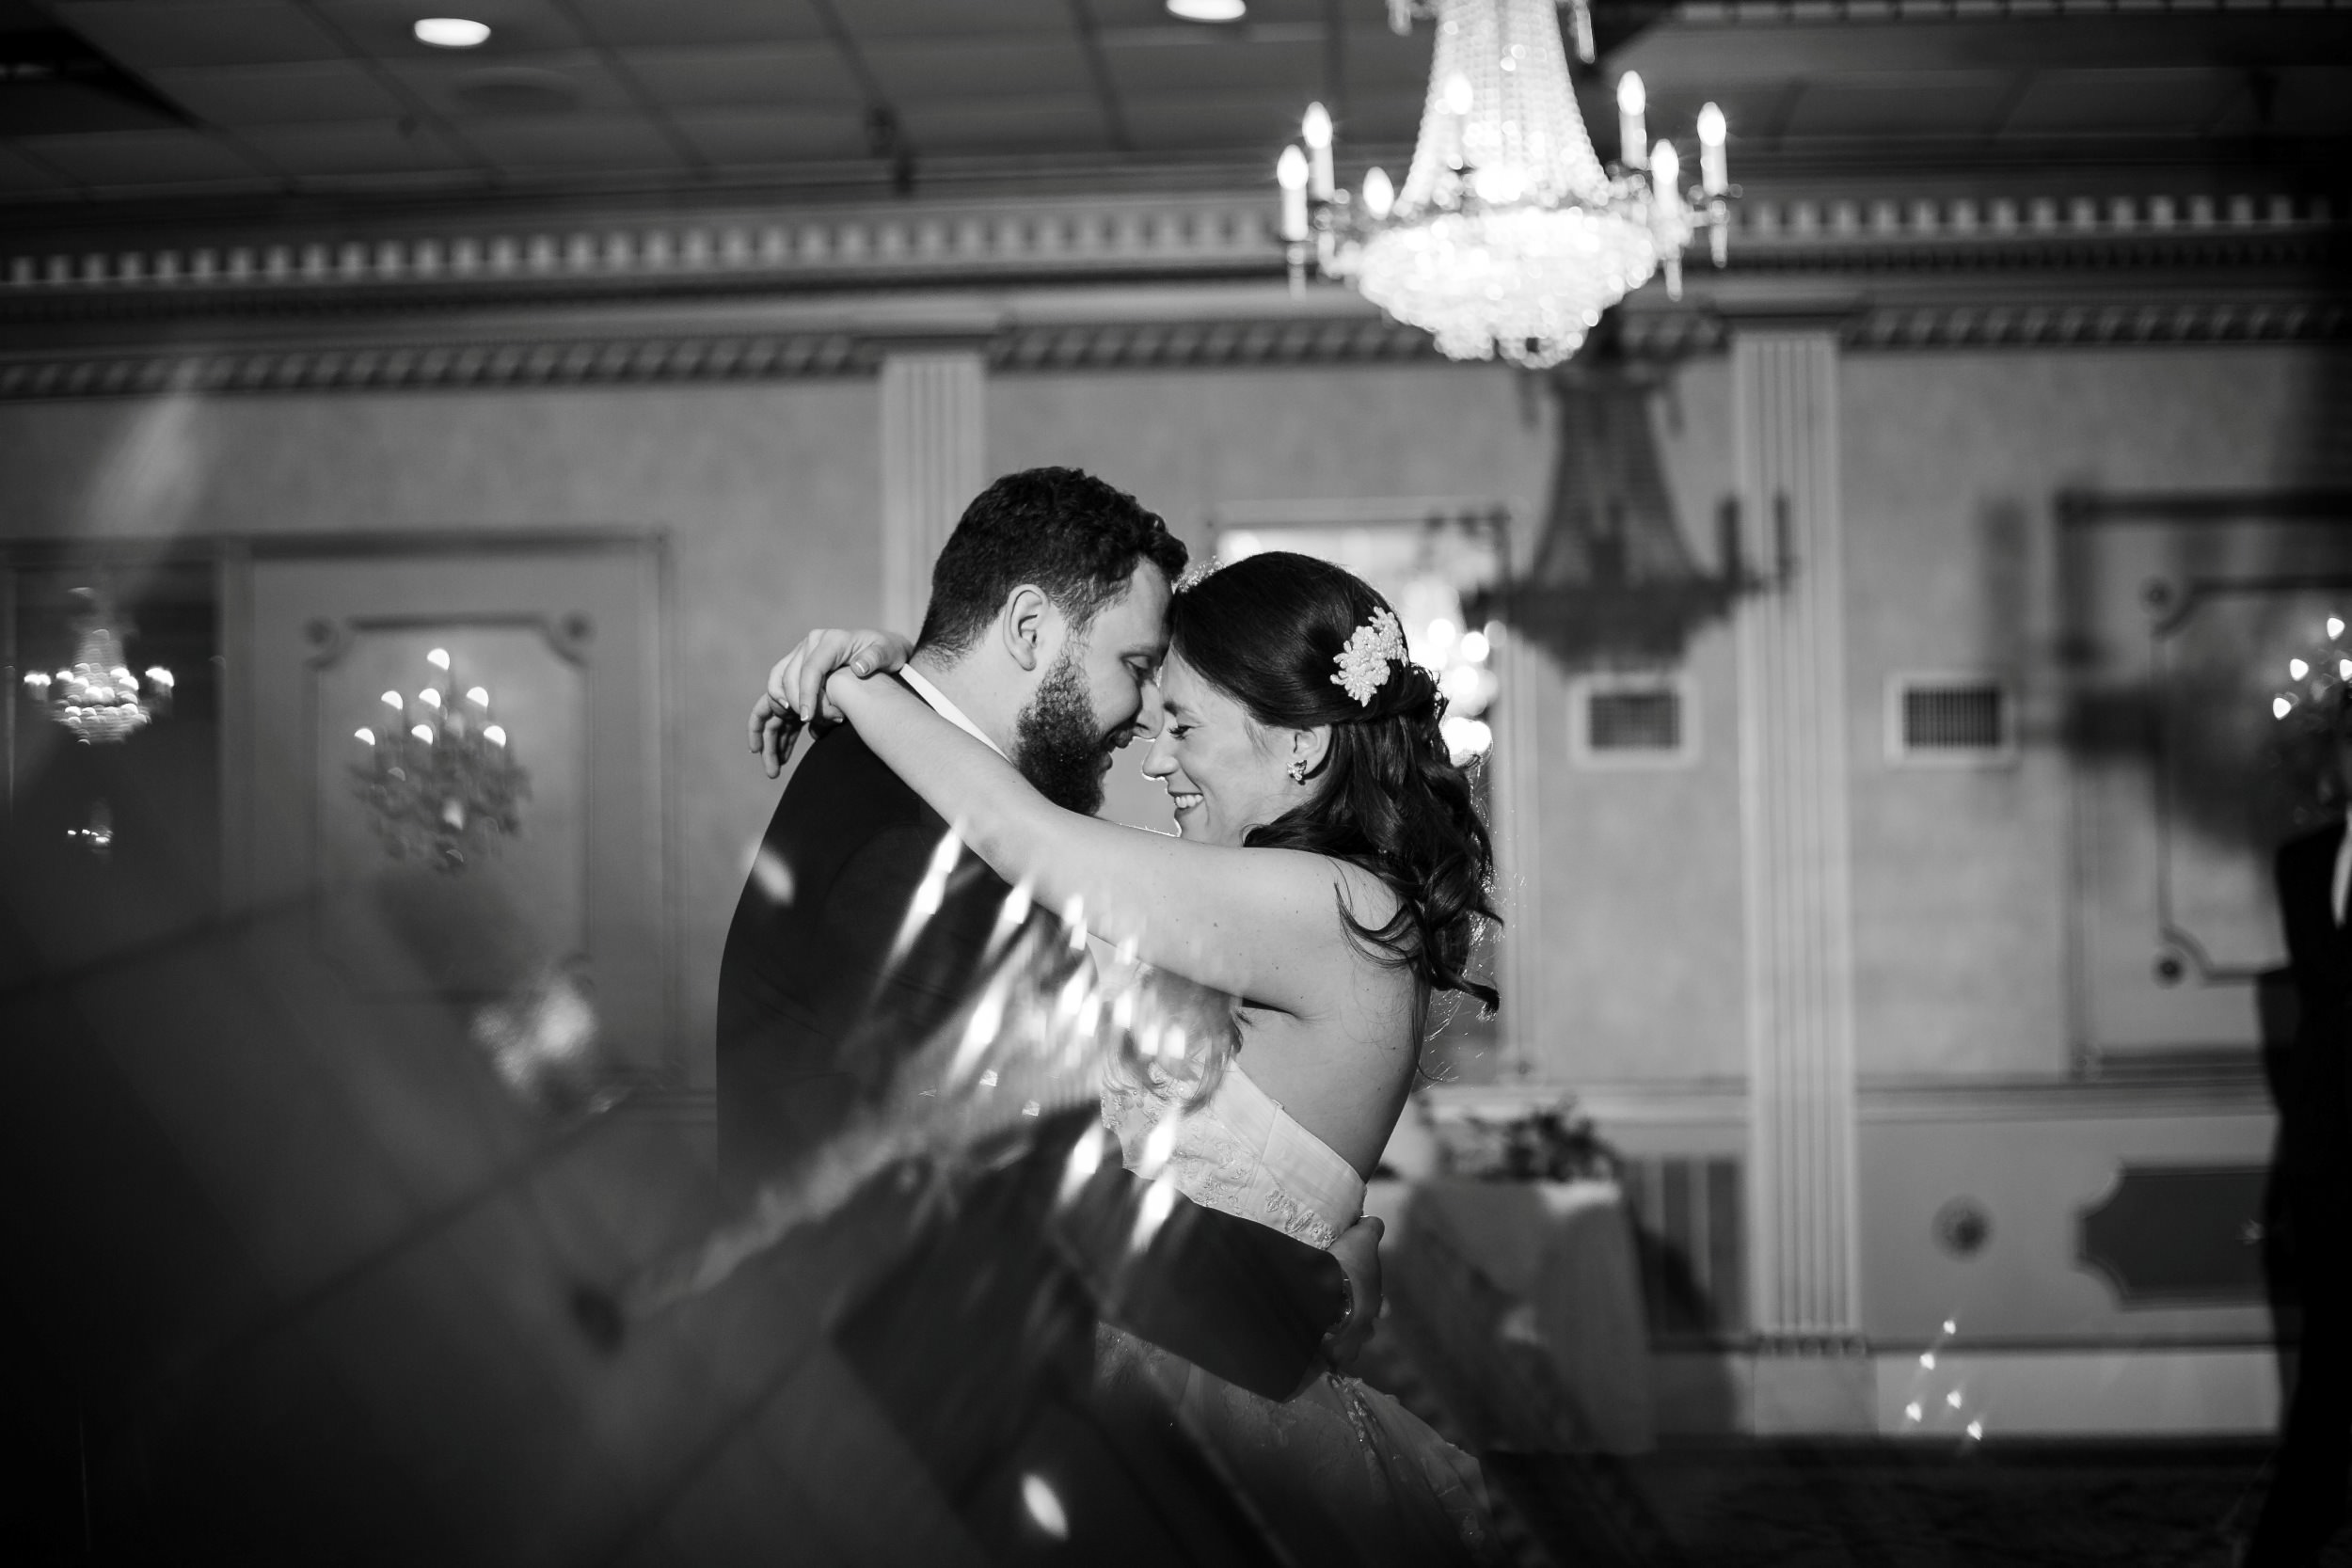 Black and white photos of bride and groom dance